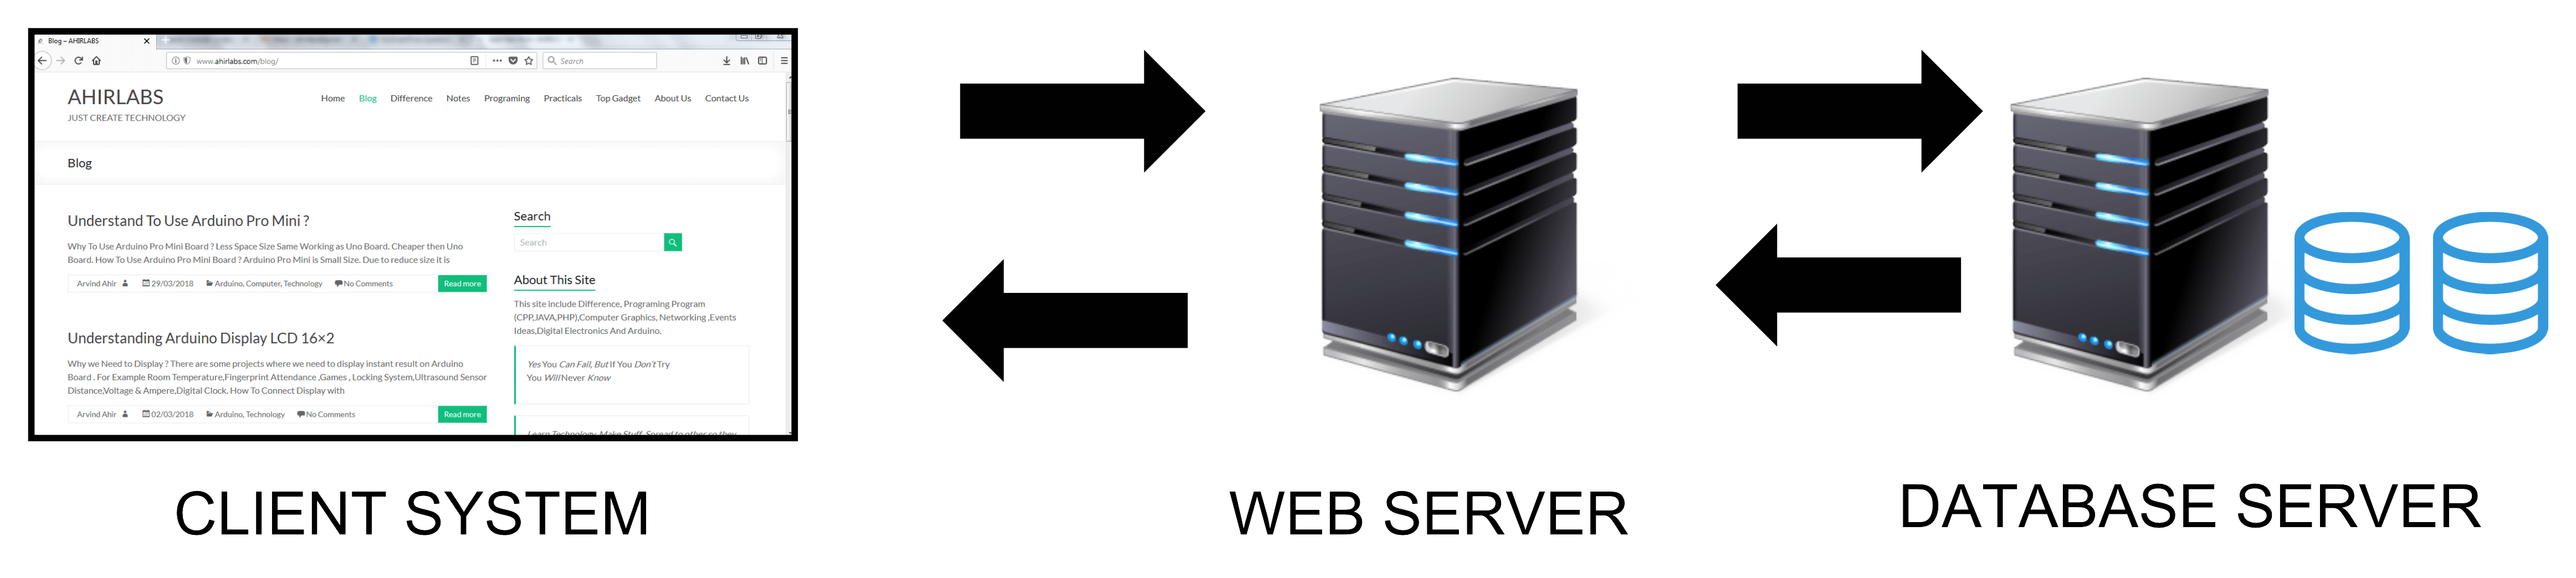 List of Different Types of Servers – AHIRLABS